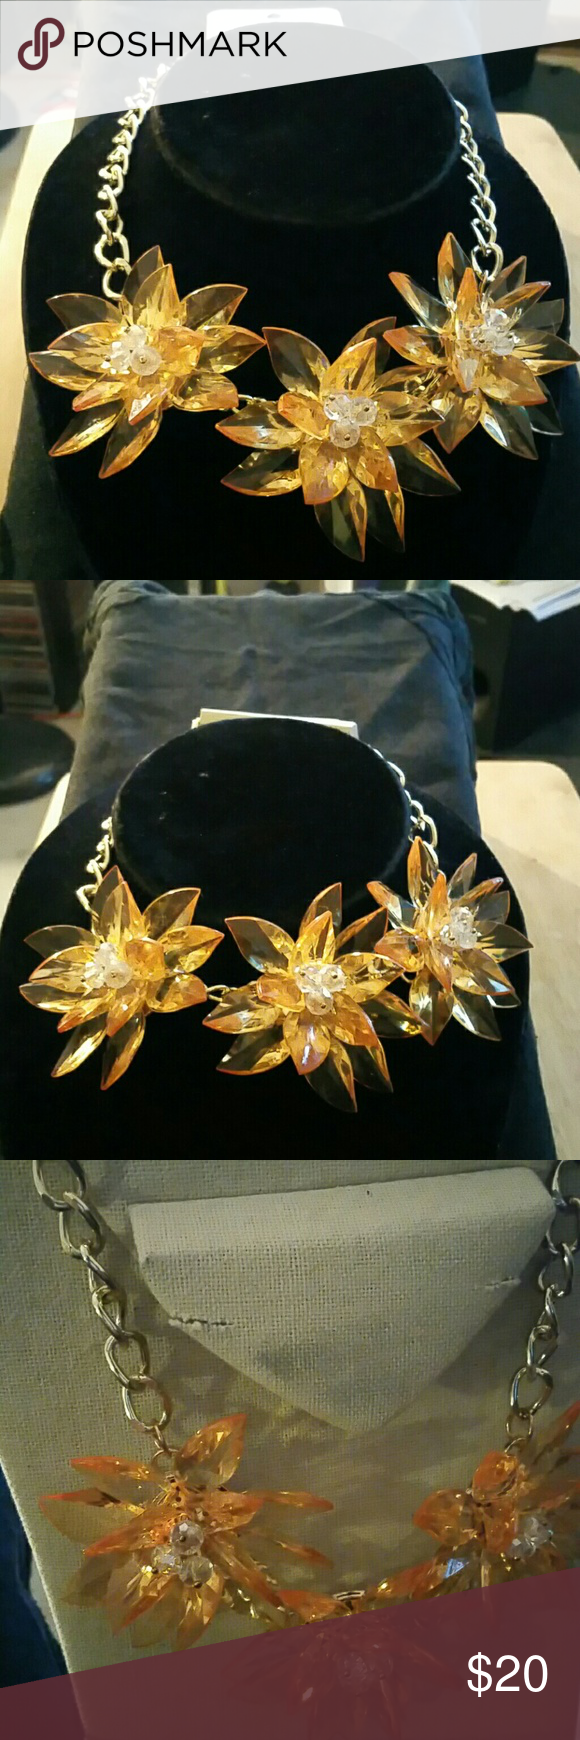 Necklace Fashion jewellery necklace yellow flower new Jewelry Necklaces